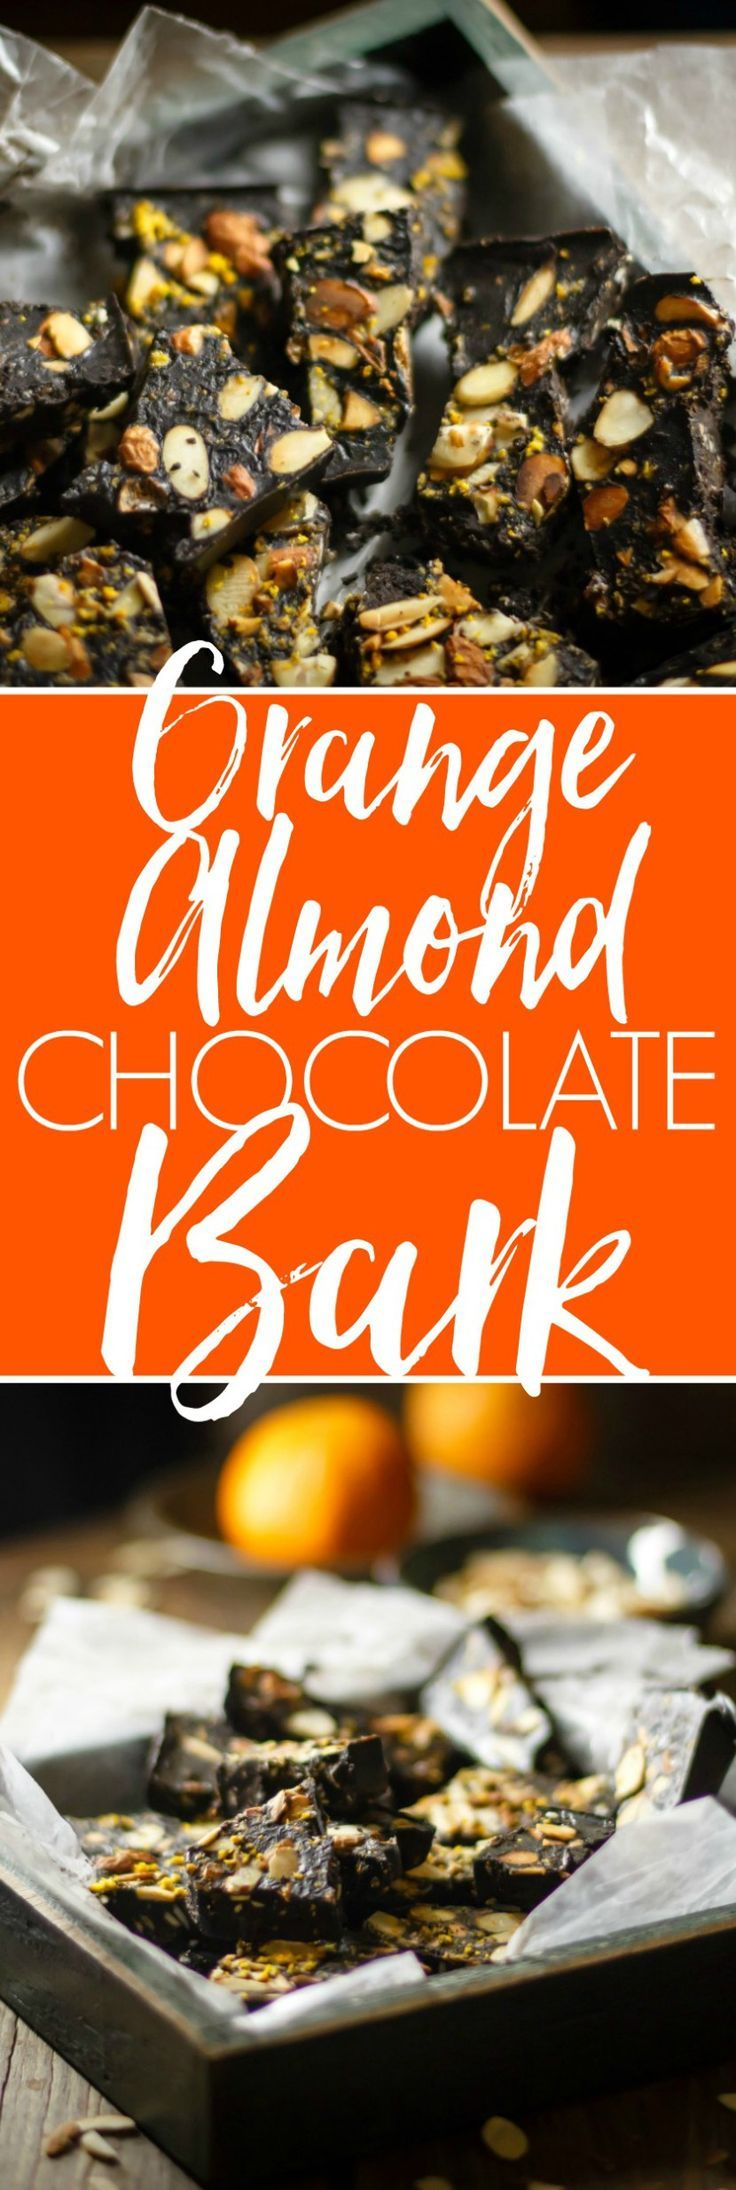 Orange Almond Coconut Oil Chocolate Bark - if you're craving chocolate, you've got to make this! Vegan, gluten free, no refined sugar and made with simple, real food ingredients.